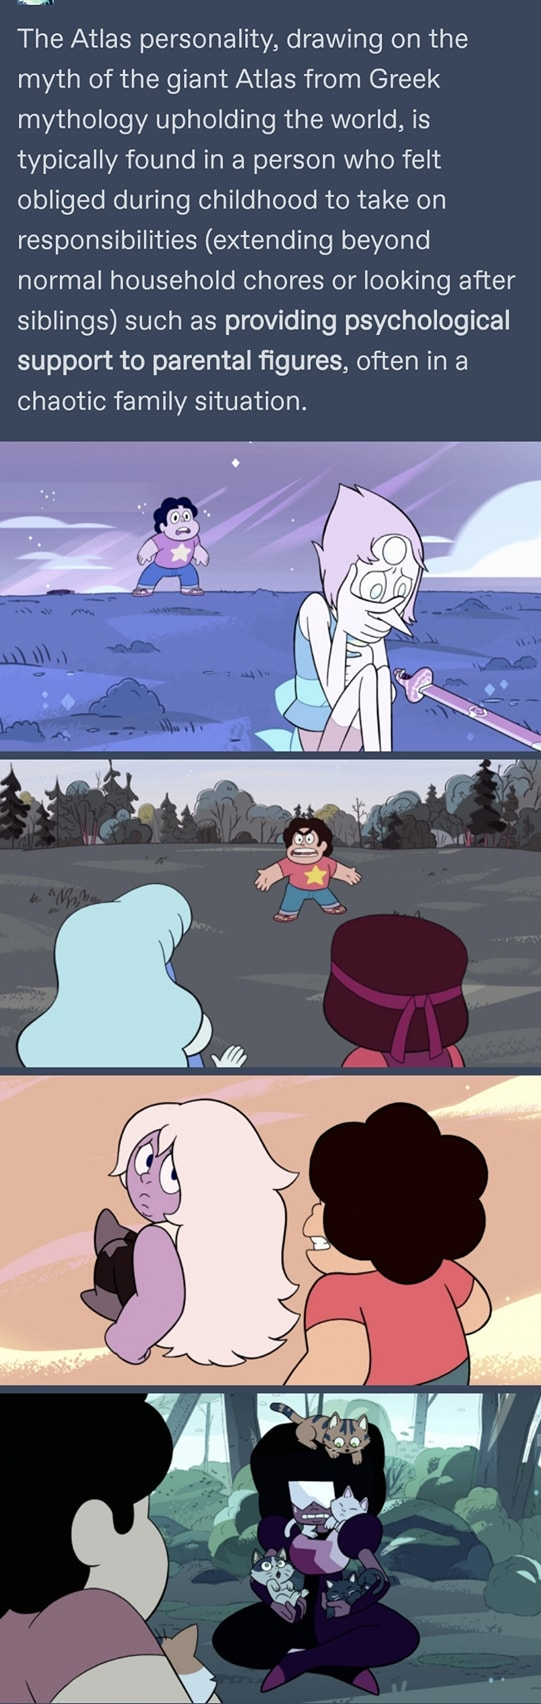 Steven Universe and The Atlas Personality